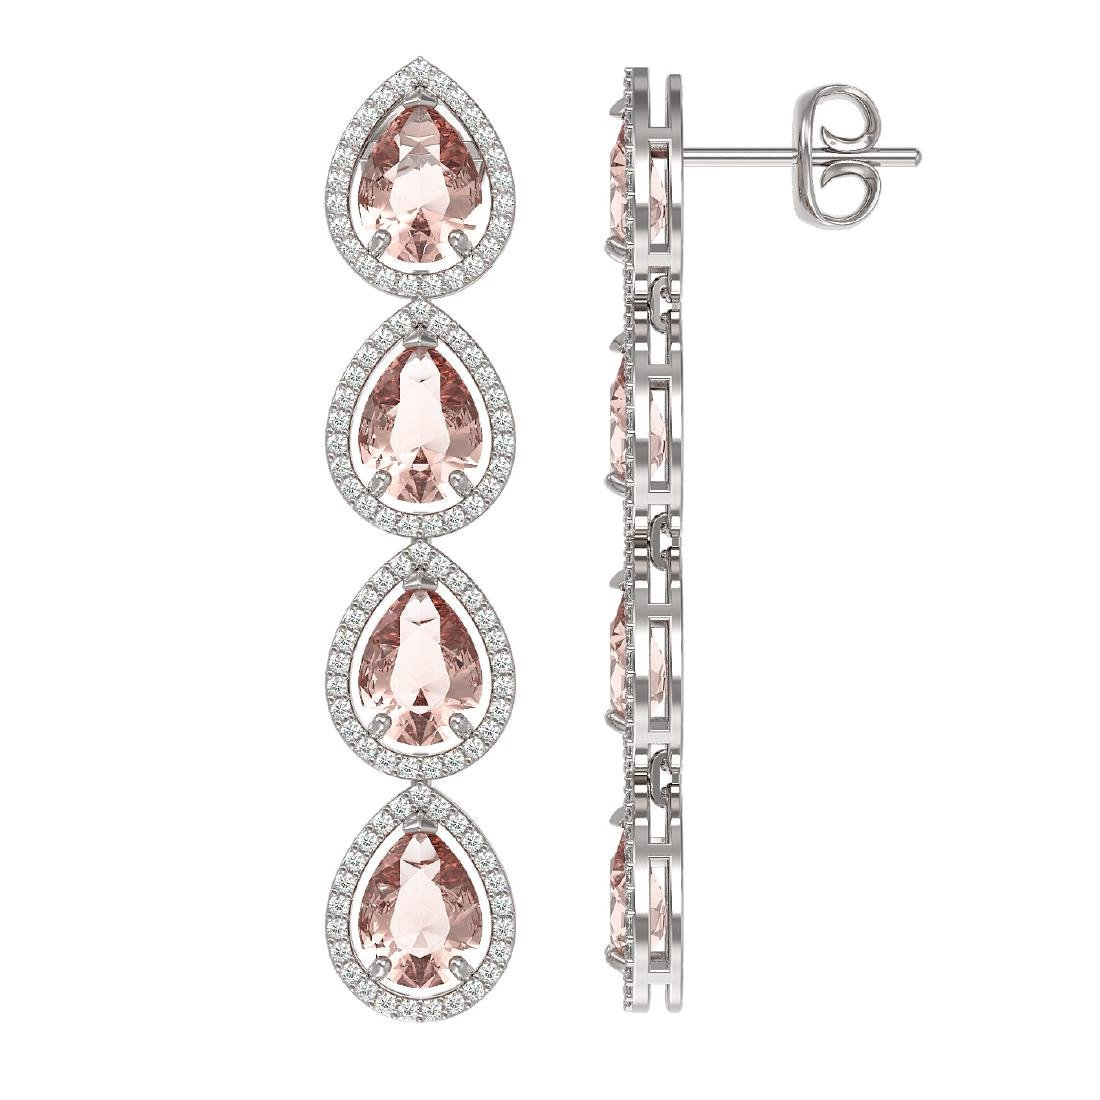 10.4 CTW Morganite & Diamond Halo Earrings 10K White - 2